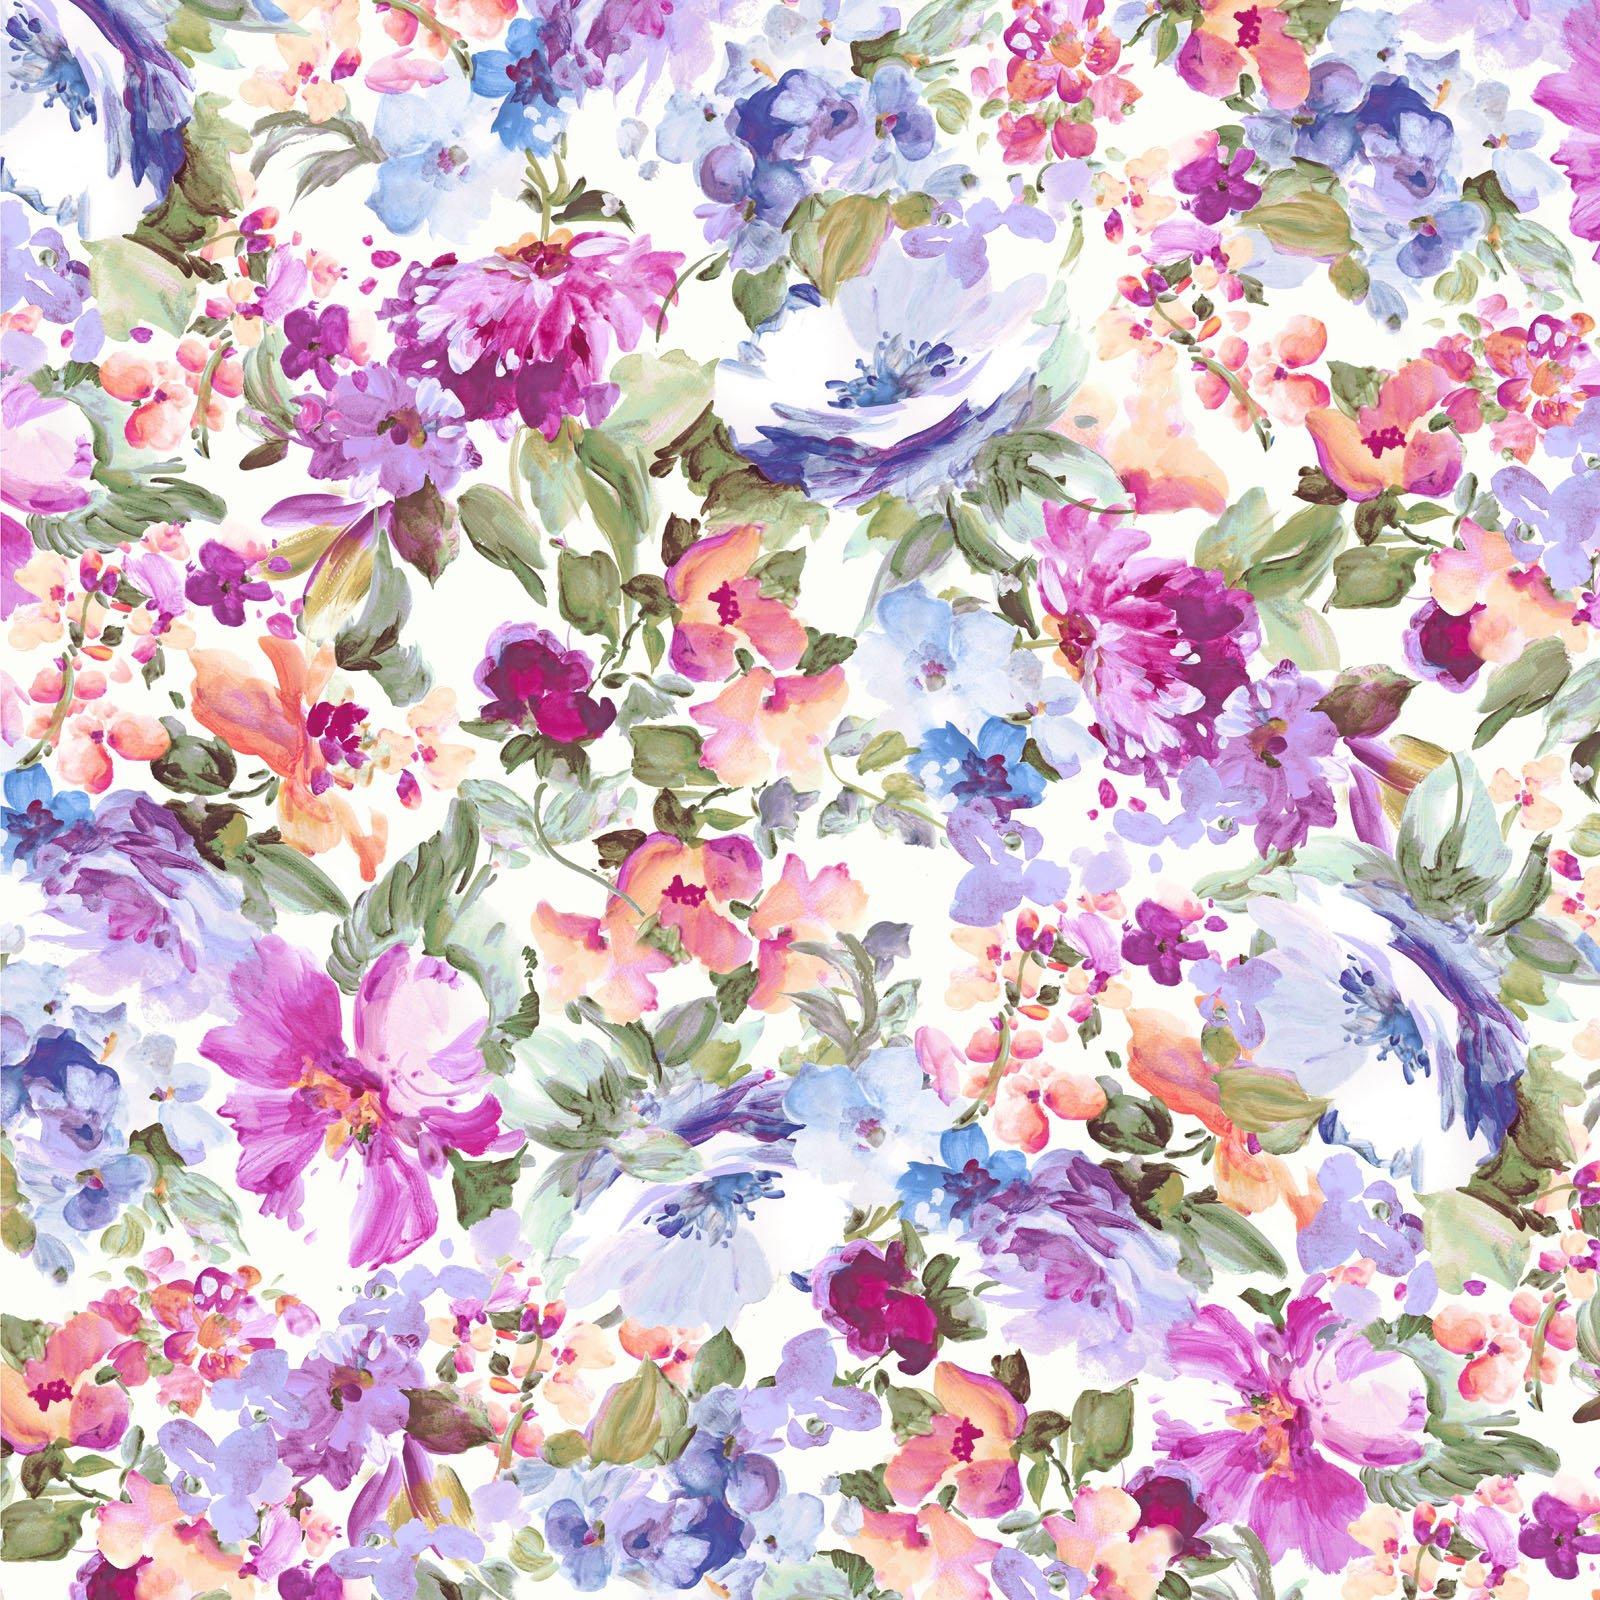 AMEI-4402 MU - AMELIA 108 BY P&B BOUTIQUE FLORAL MULTI - ARRIVING IN APRIL 2021